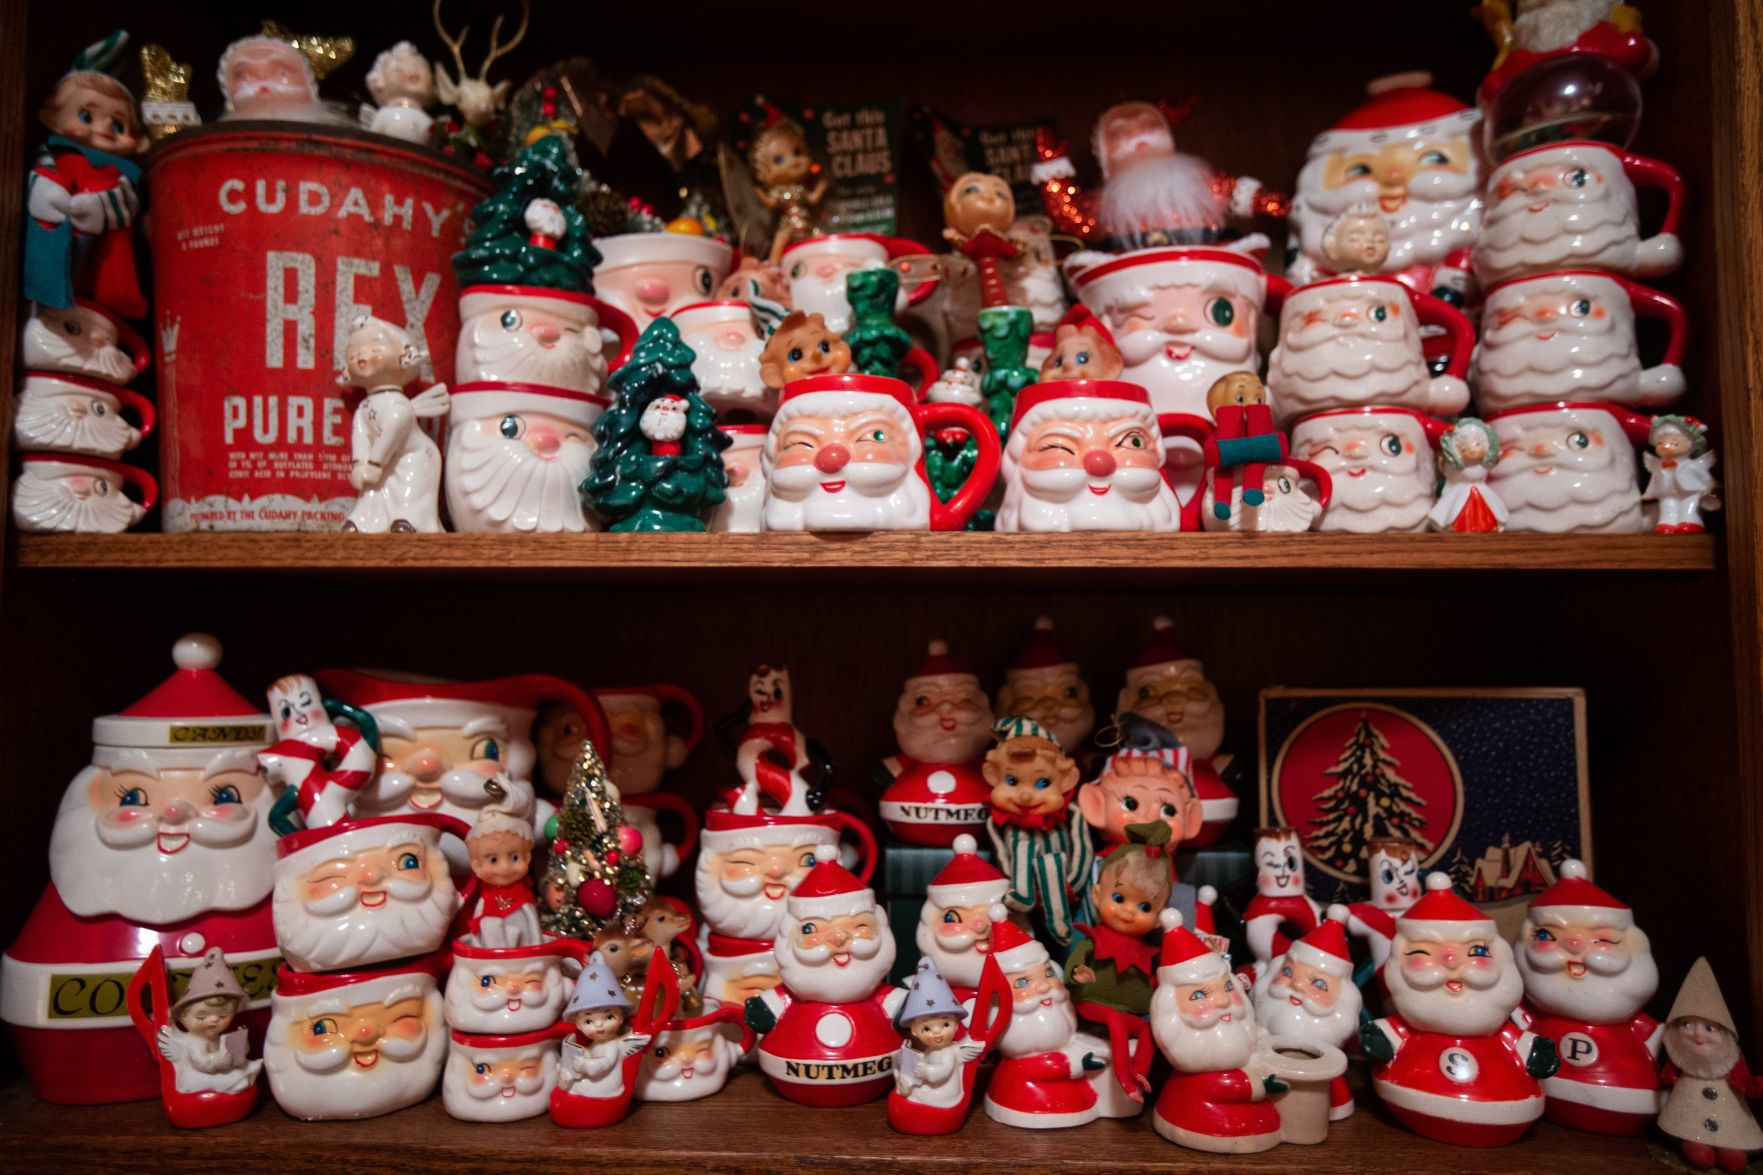 Fenton S Mrs Santa Claus Collects Santa Mugs Ornaments And Vintage Christmas Fun Home Garden Stltoday Com